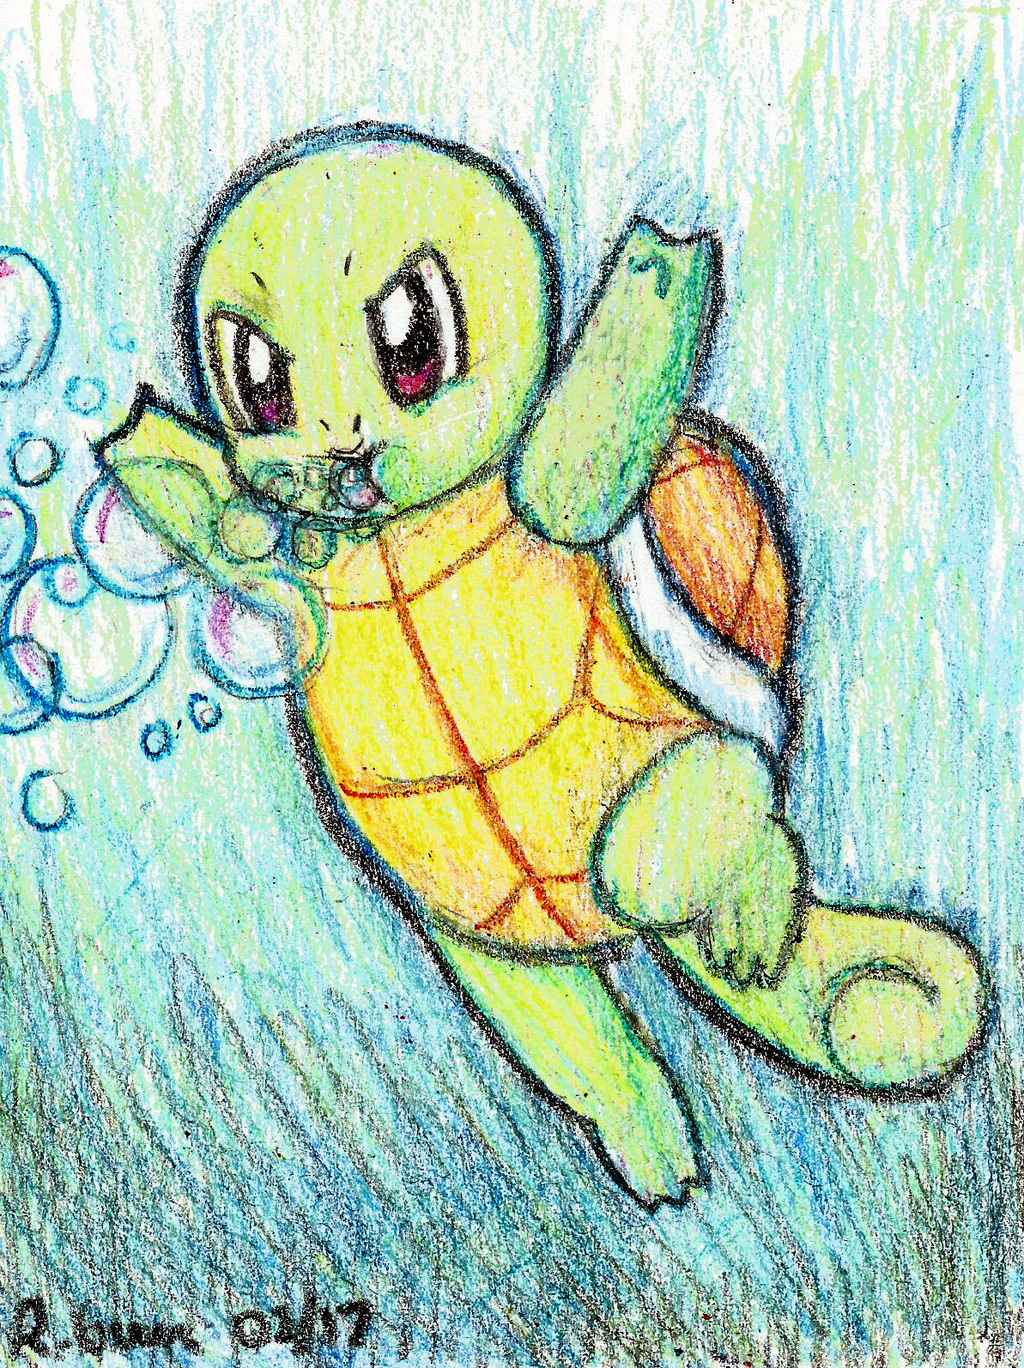 Most recent image: Squirtle Bubble